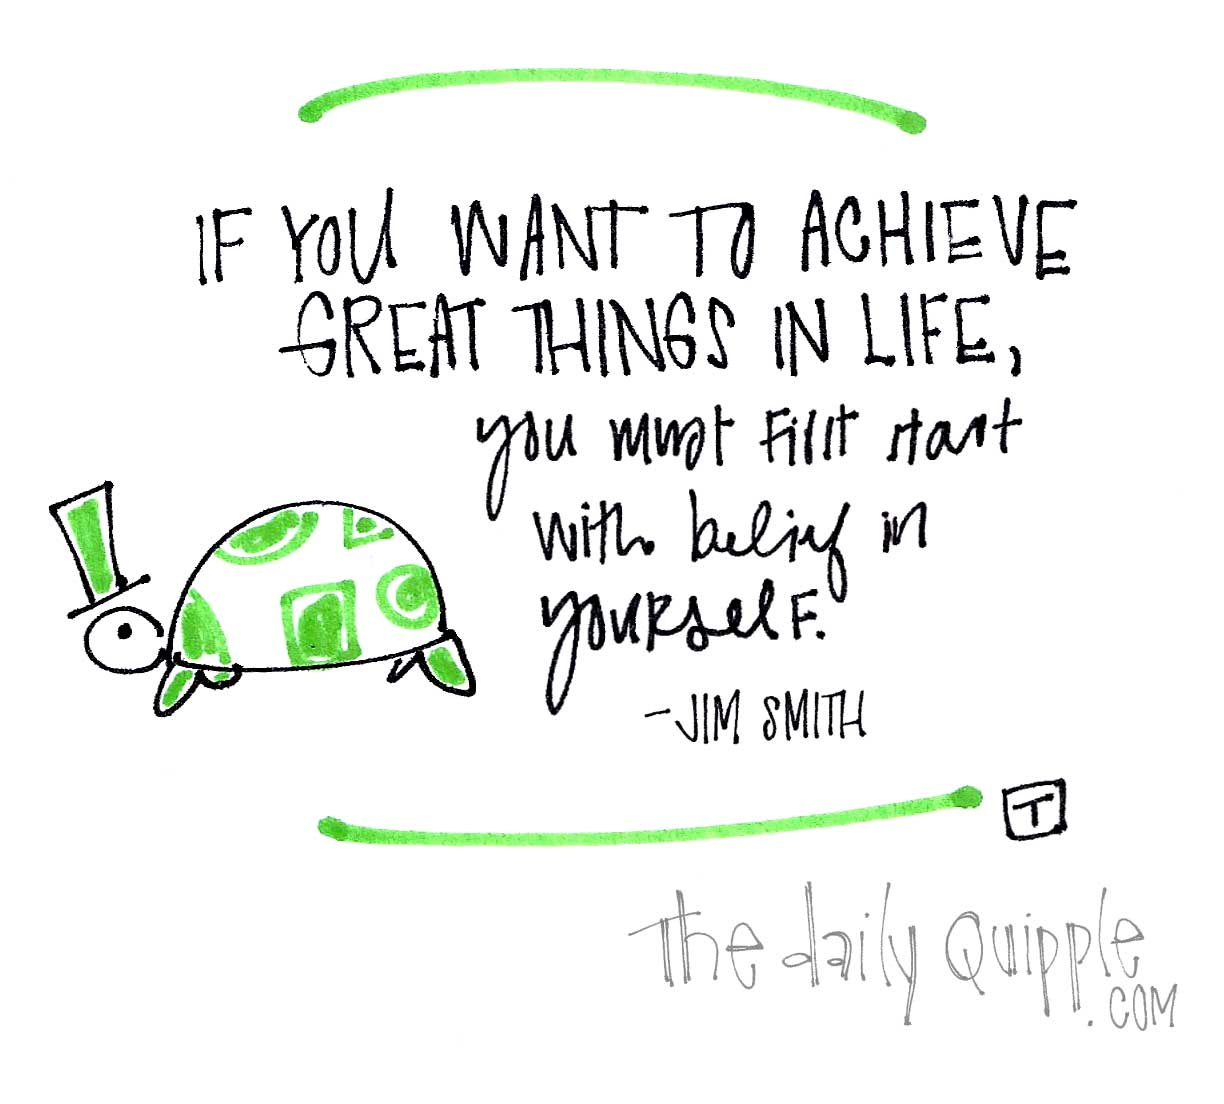 If You Want To Achieve Great Things In Life, You Must First Start With Belief In Yourself. - Jim Smith